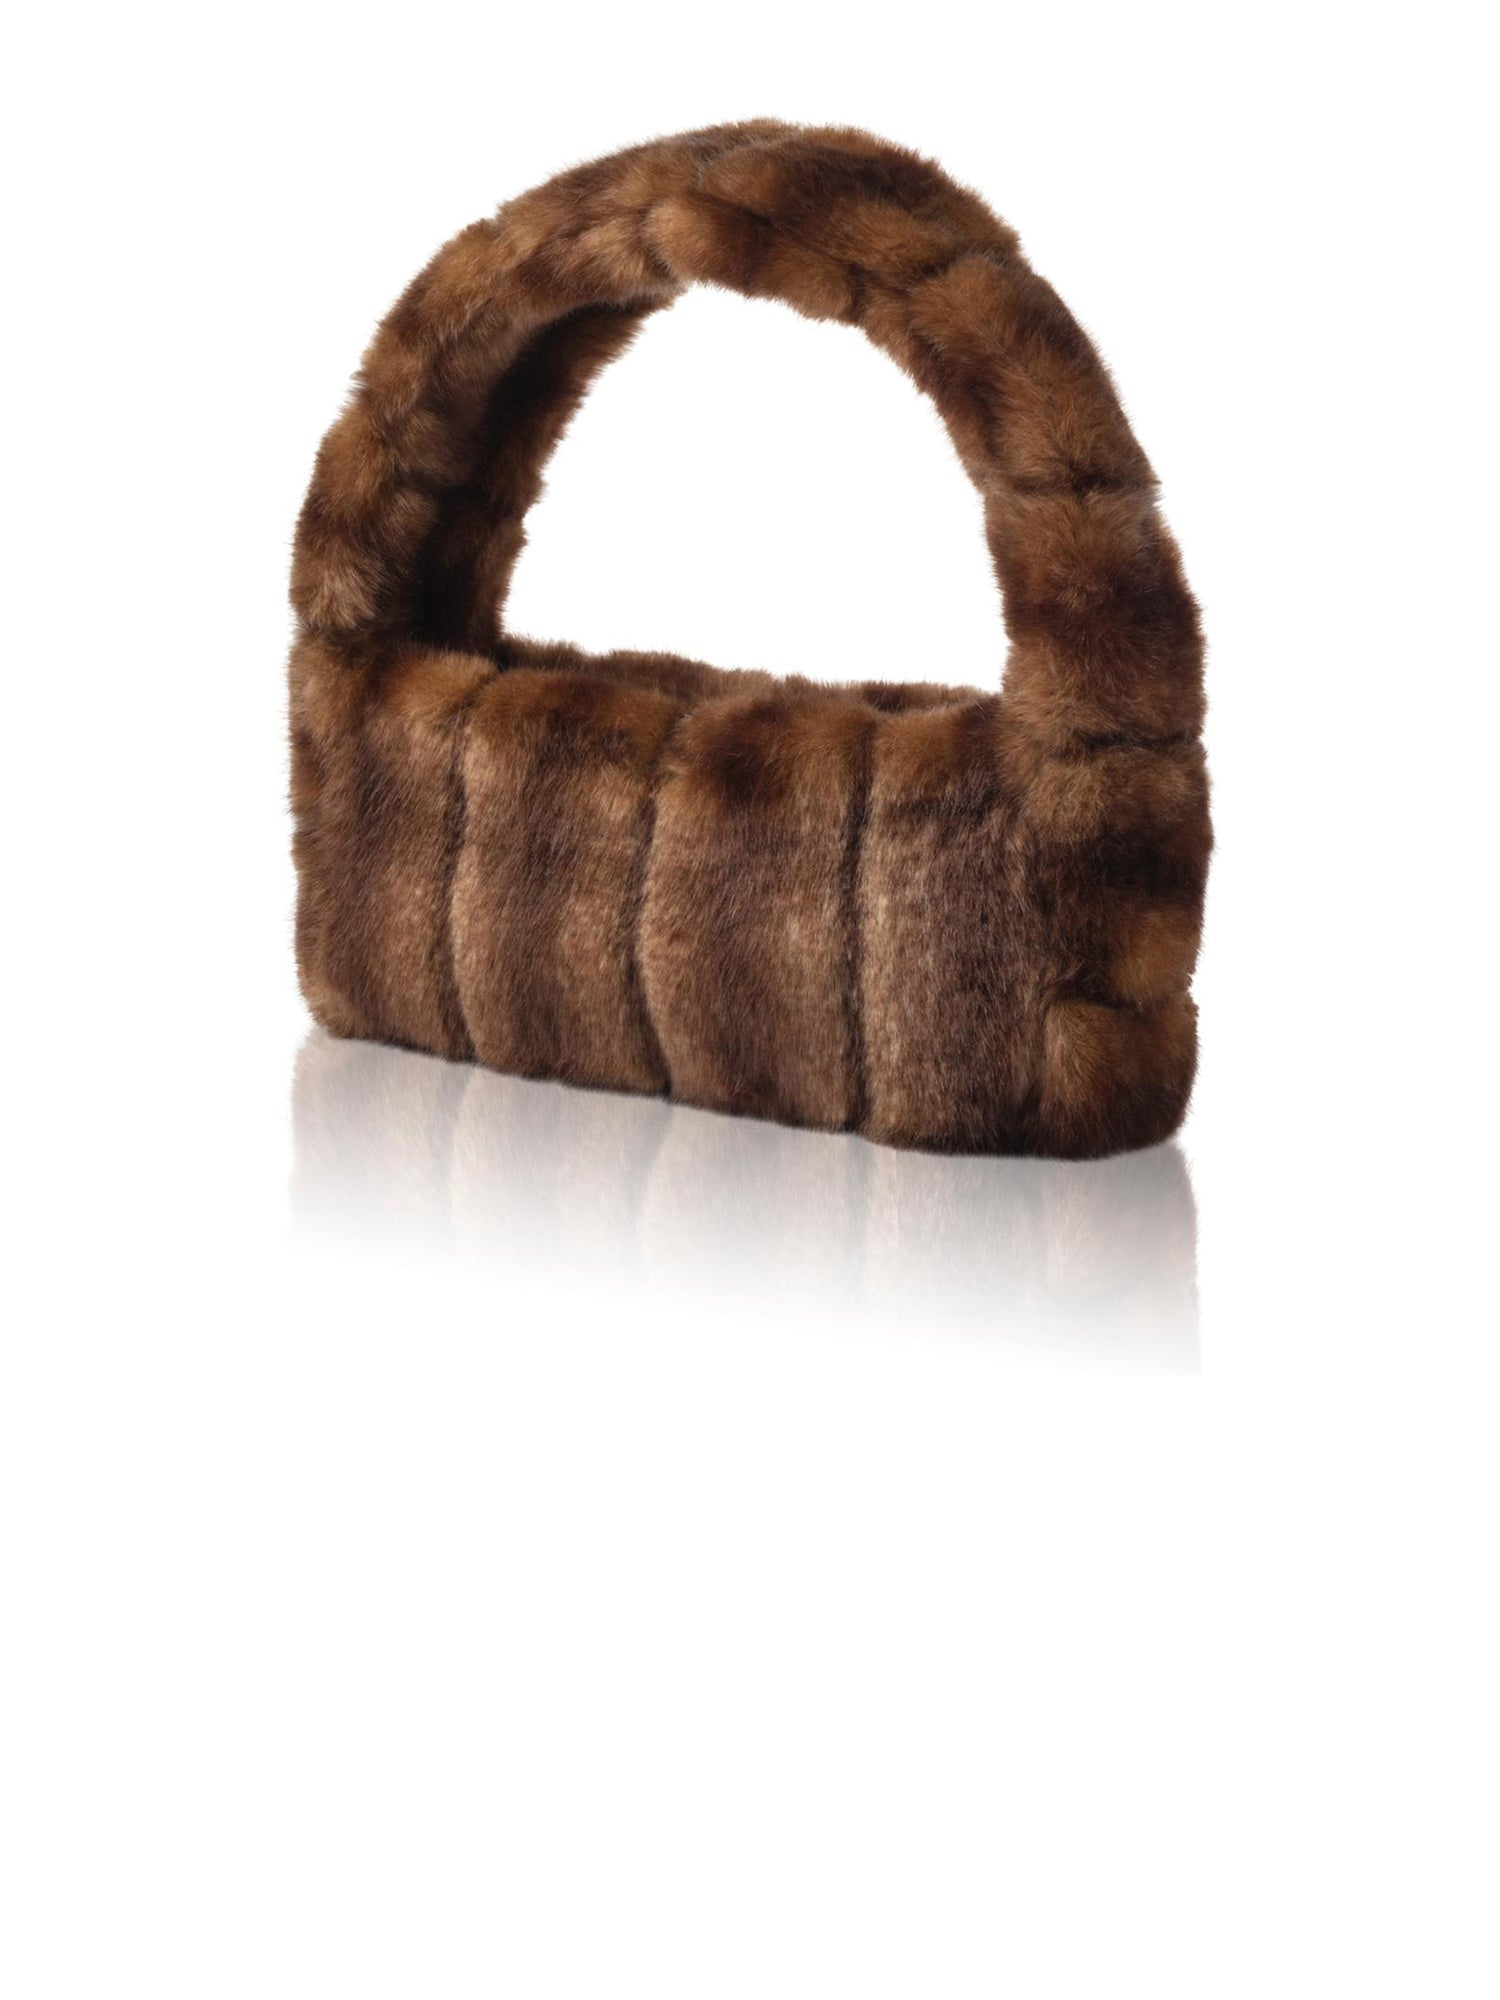 A Packshot Of Marei1998's Pampas Faux Fur Handbag In The Classiest Brown Color. Featuring Narrow Silhouette And Short Strap. A Chic Upgrade To Any Outfit. Front View.